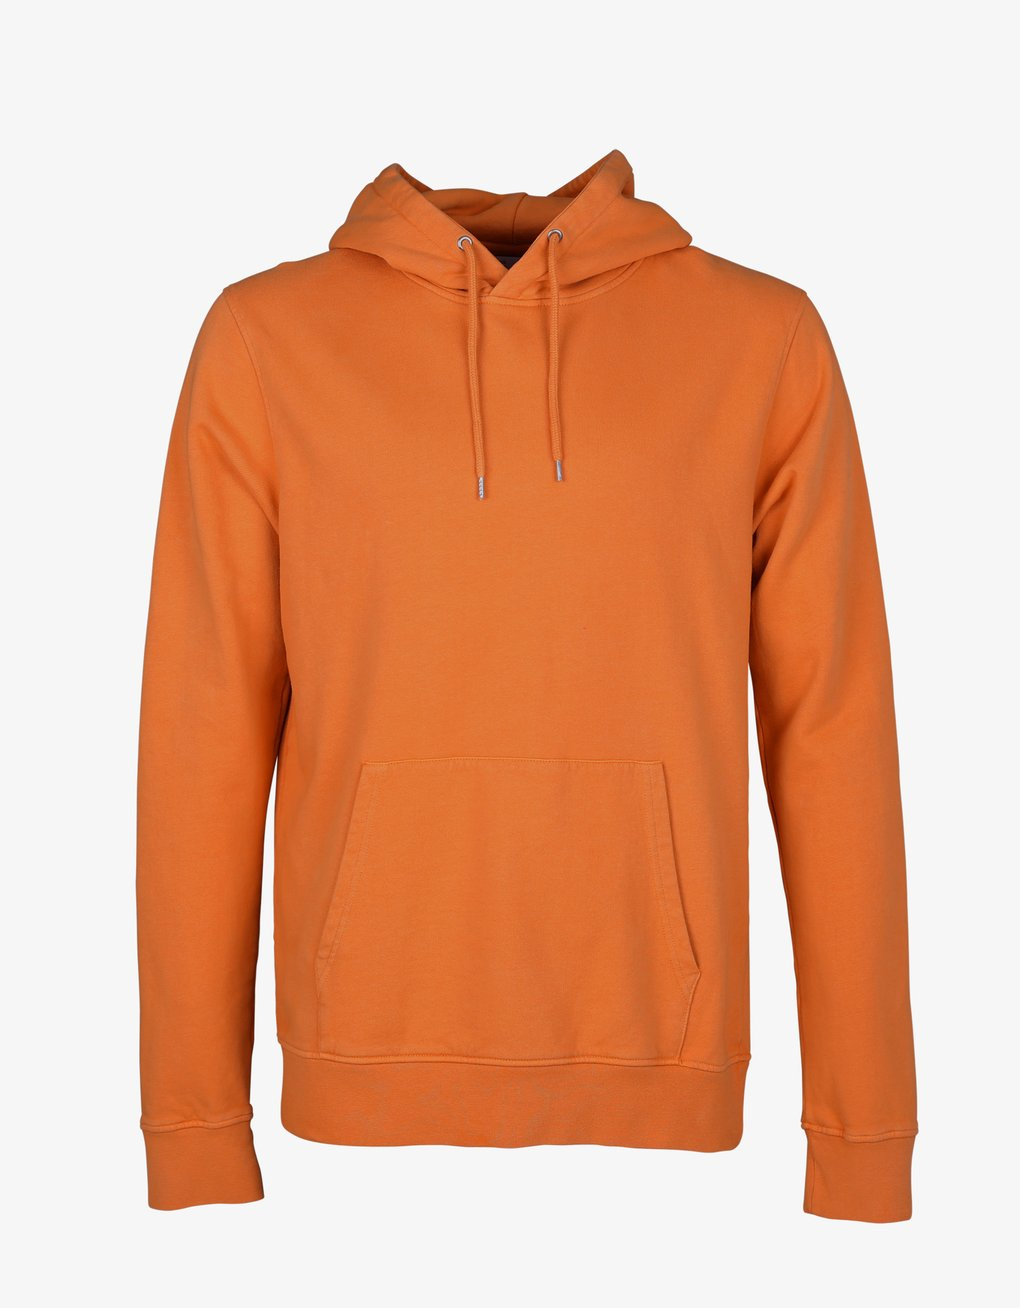 COLORFUL STANDARD | Classic Organic Hood | Burned Orange - LONDØNWORKS